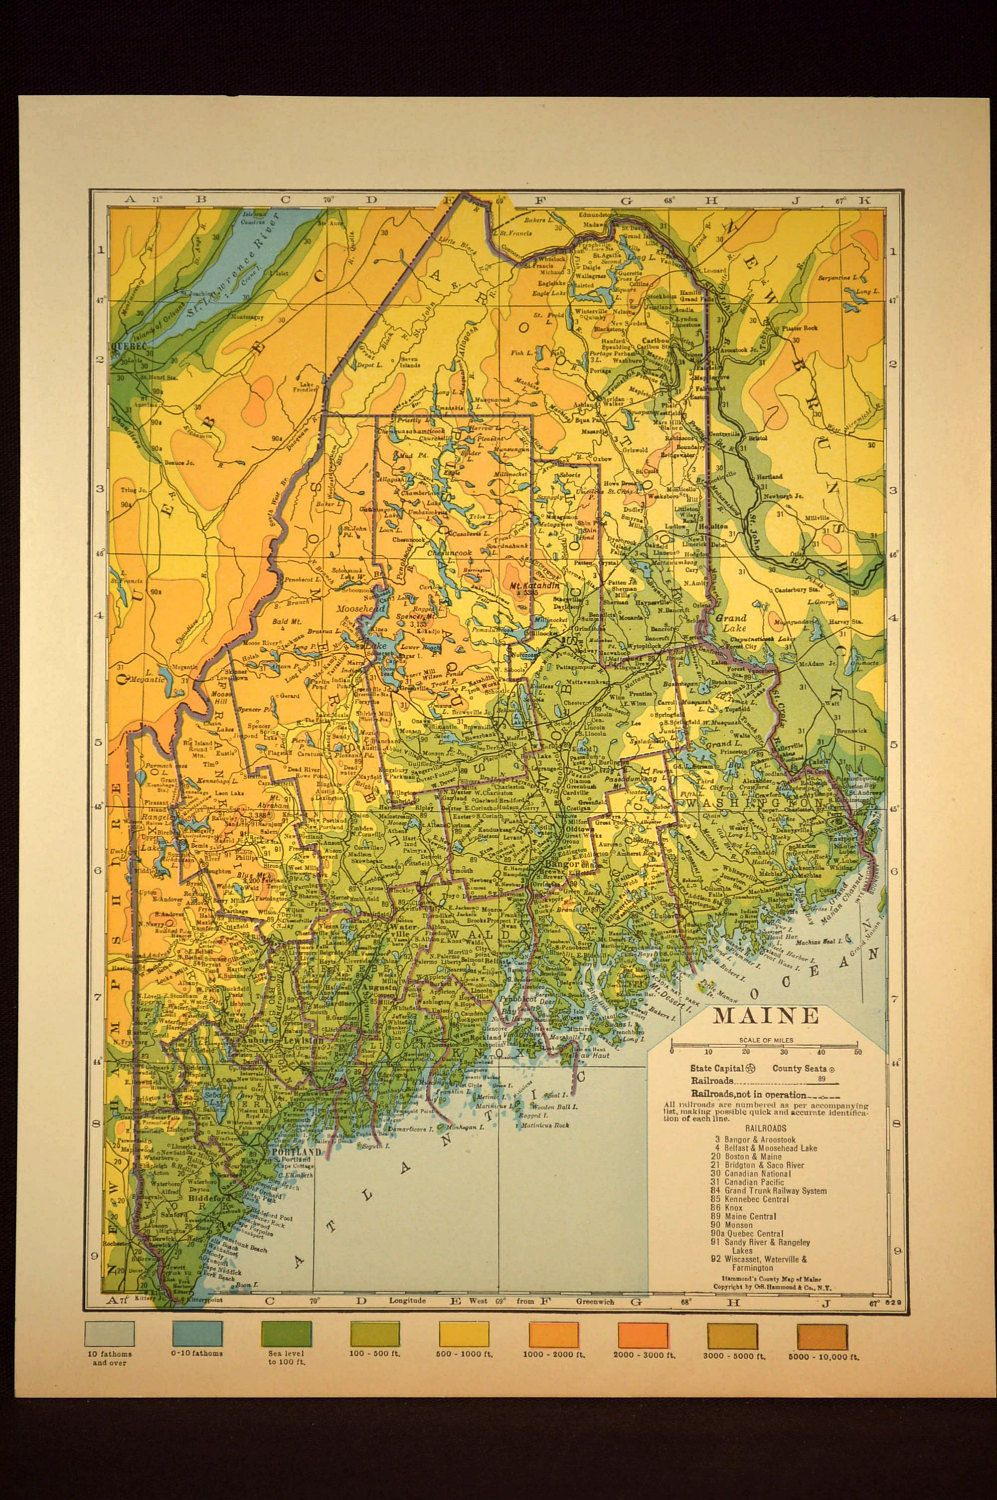 Maine Map Maine Topographic Map Colorful Colored Topo Map Wall - Topographical map of maine